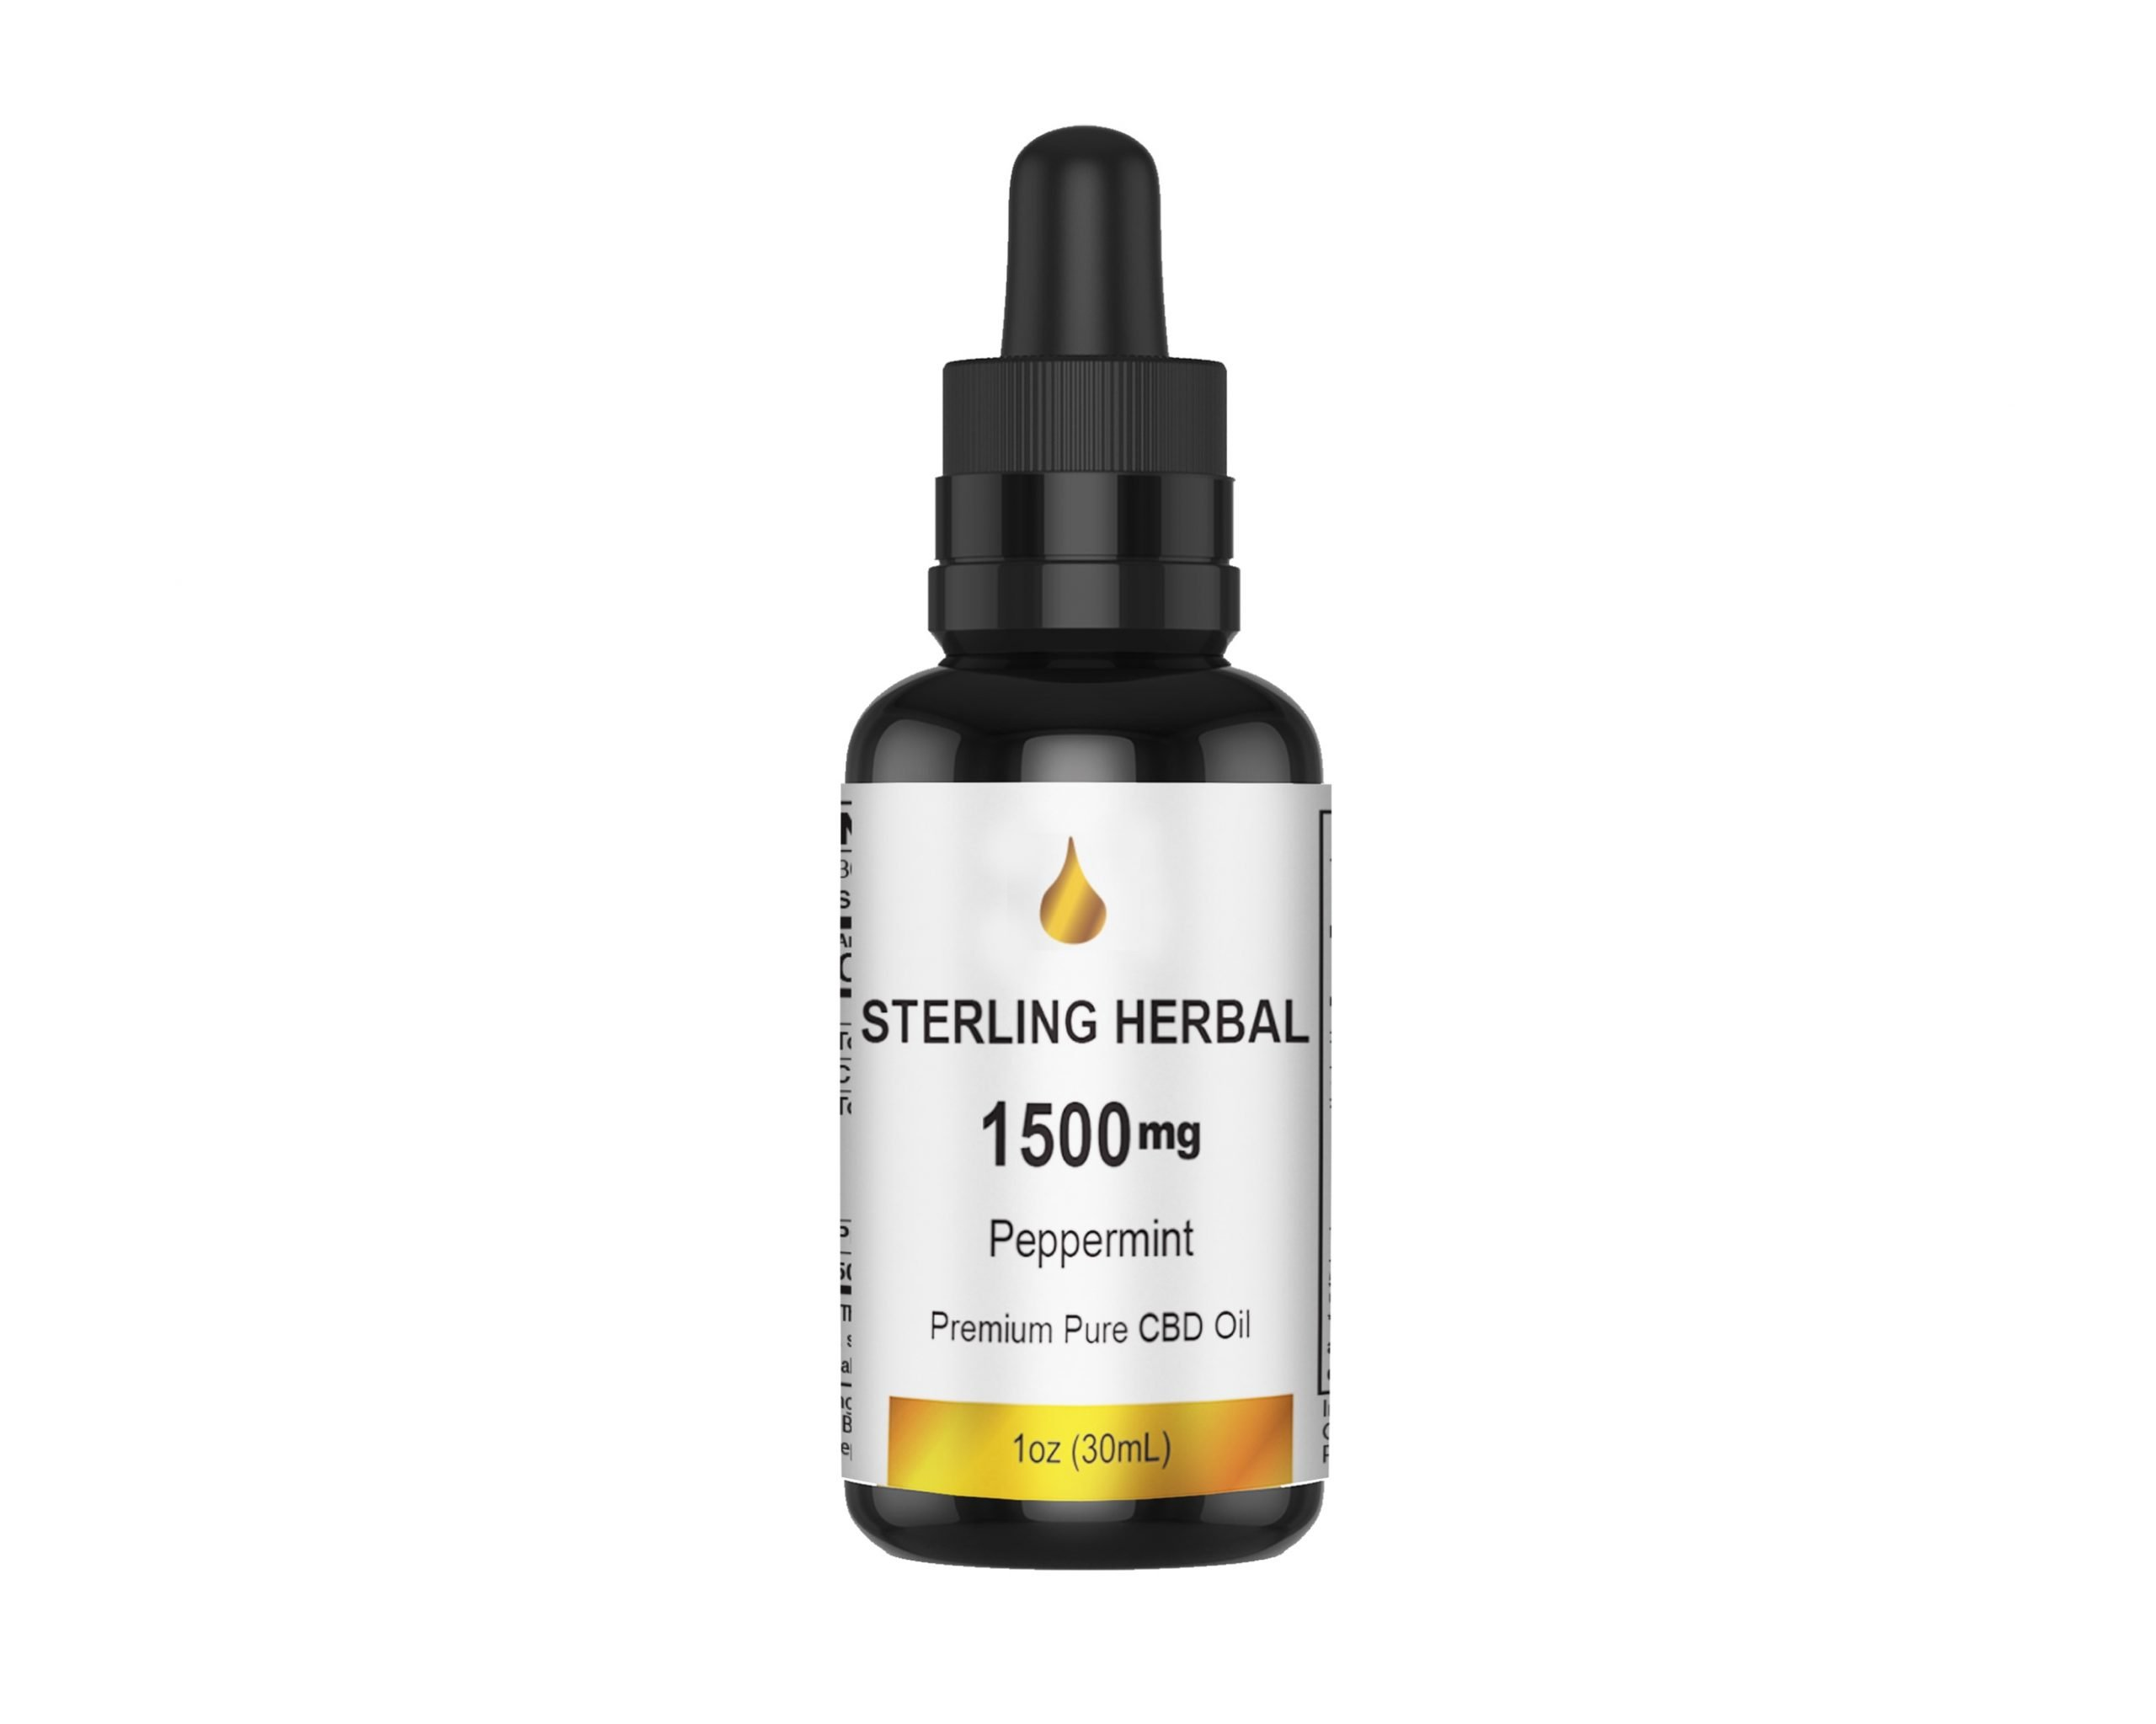 FULL SPECTRUM 1500MG 30ML